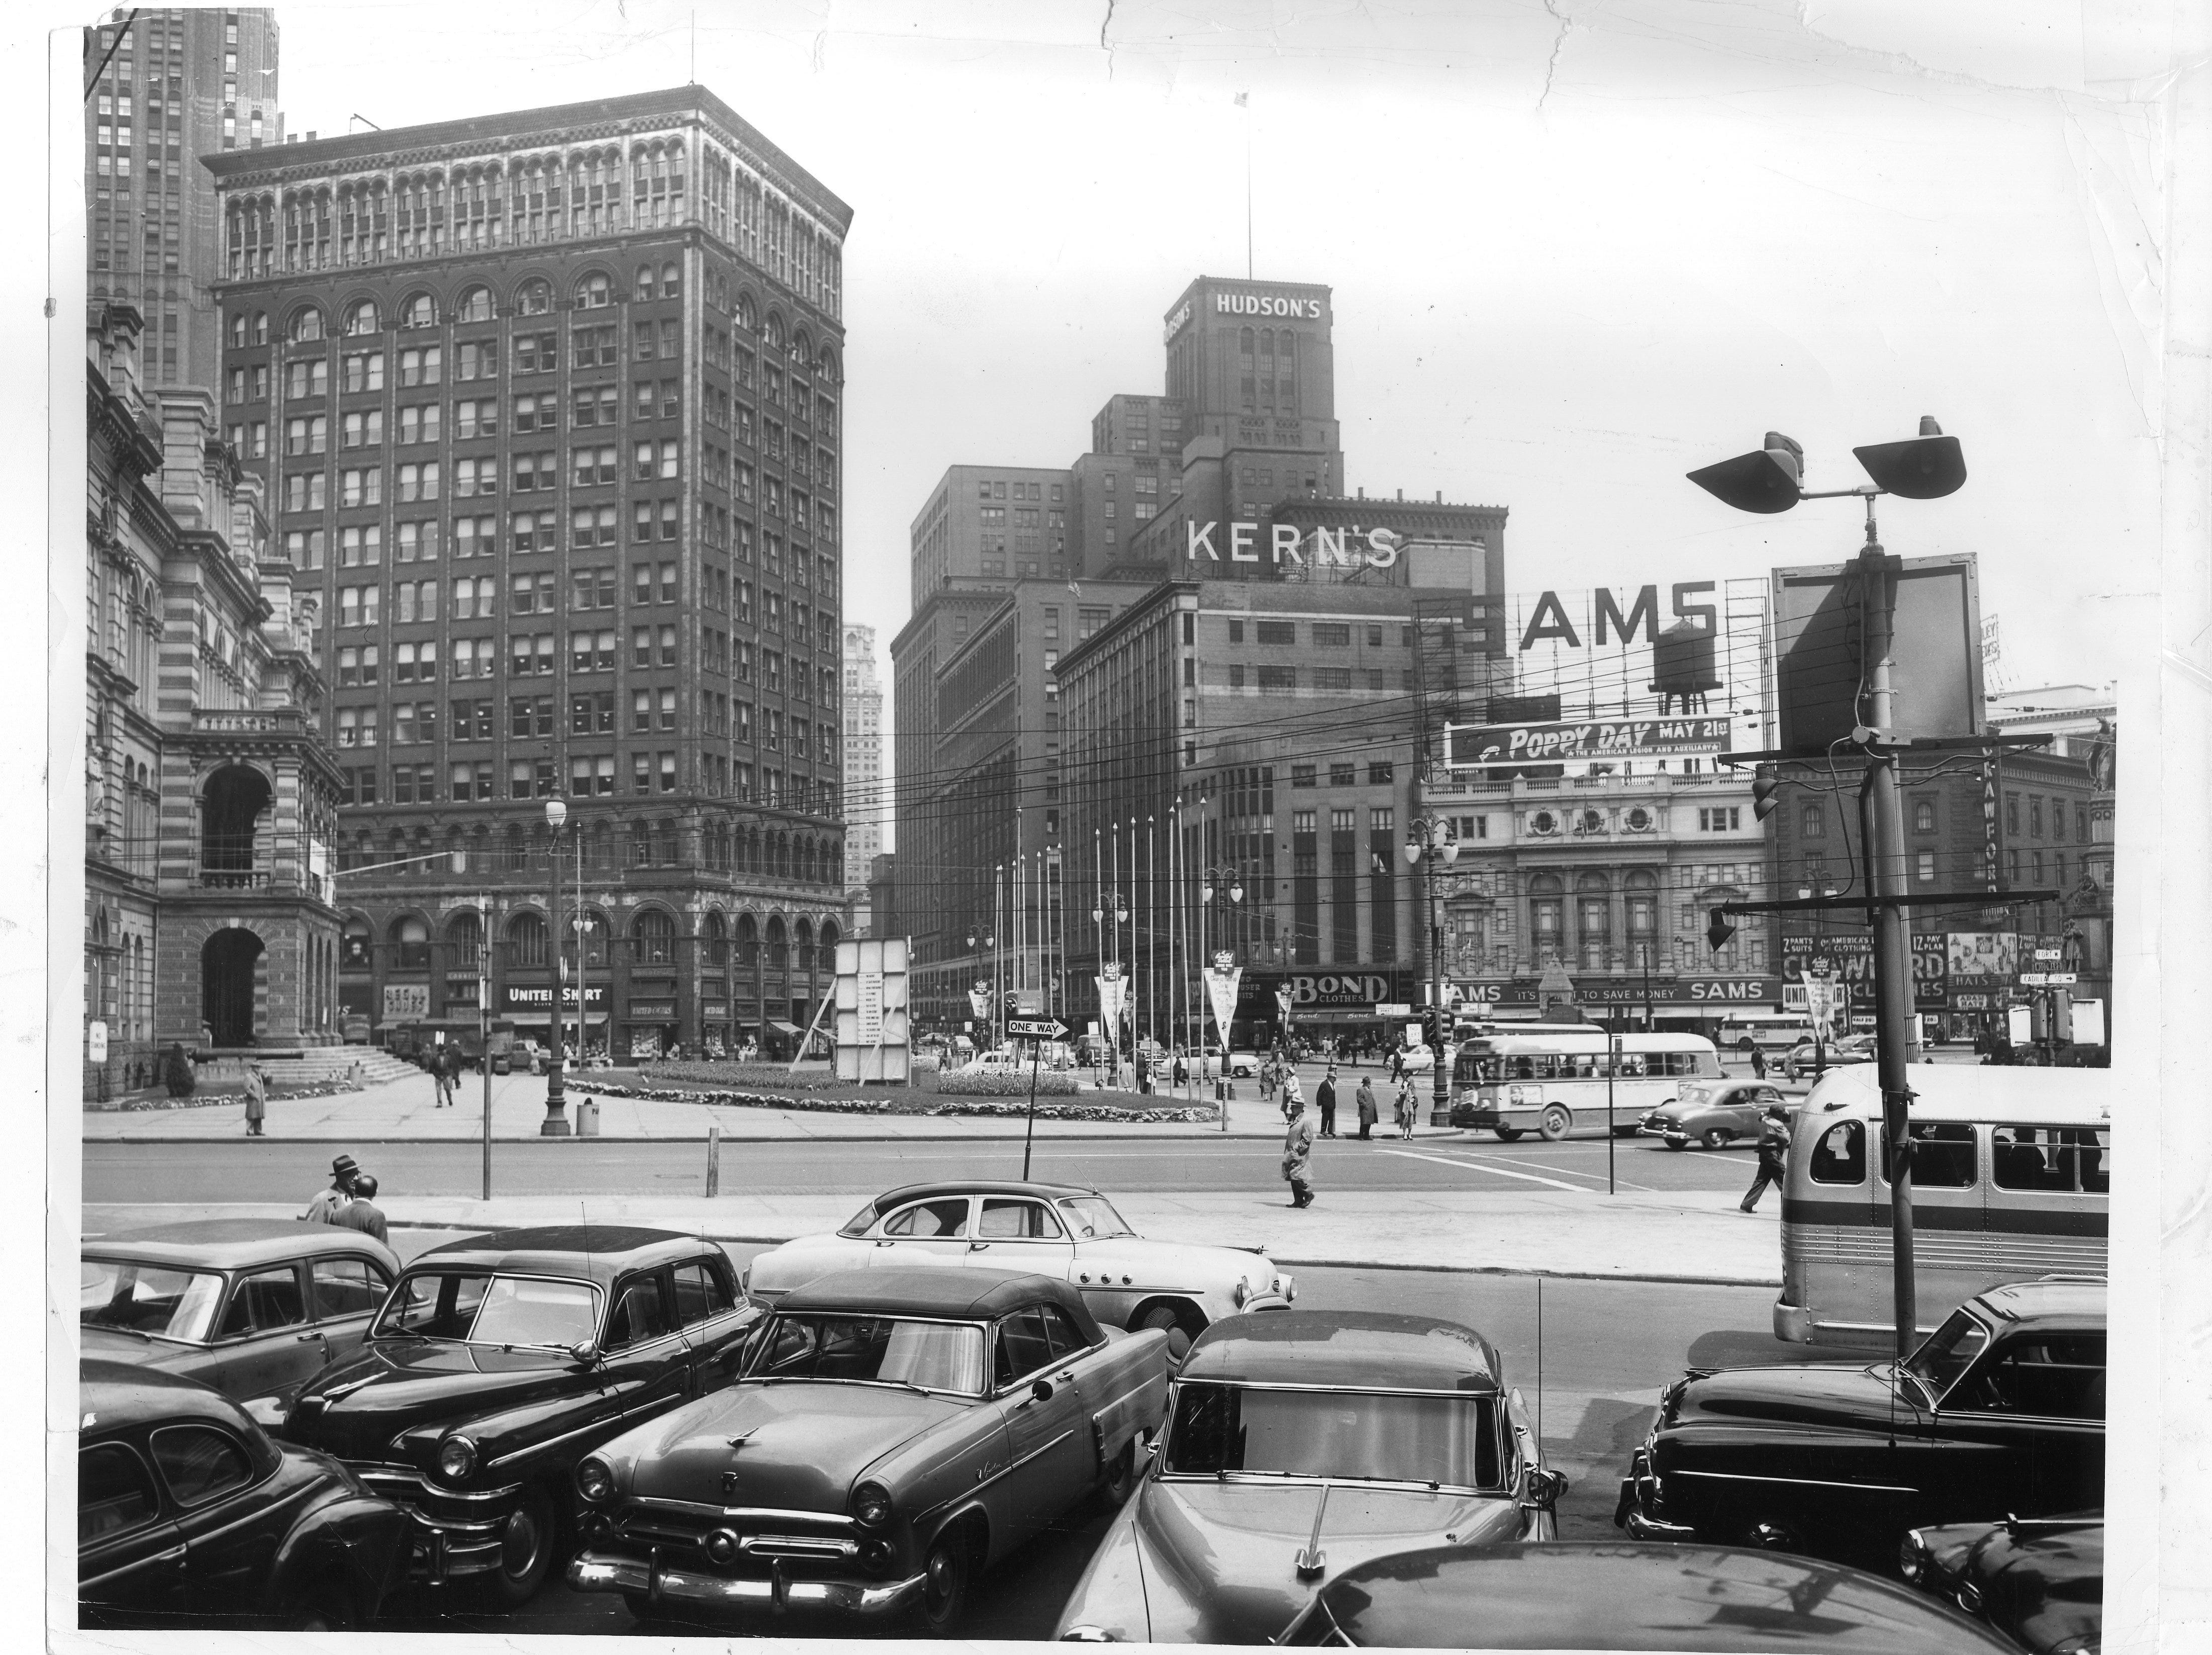 Detroit Cityview of Kern's & Hudson's